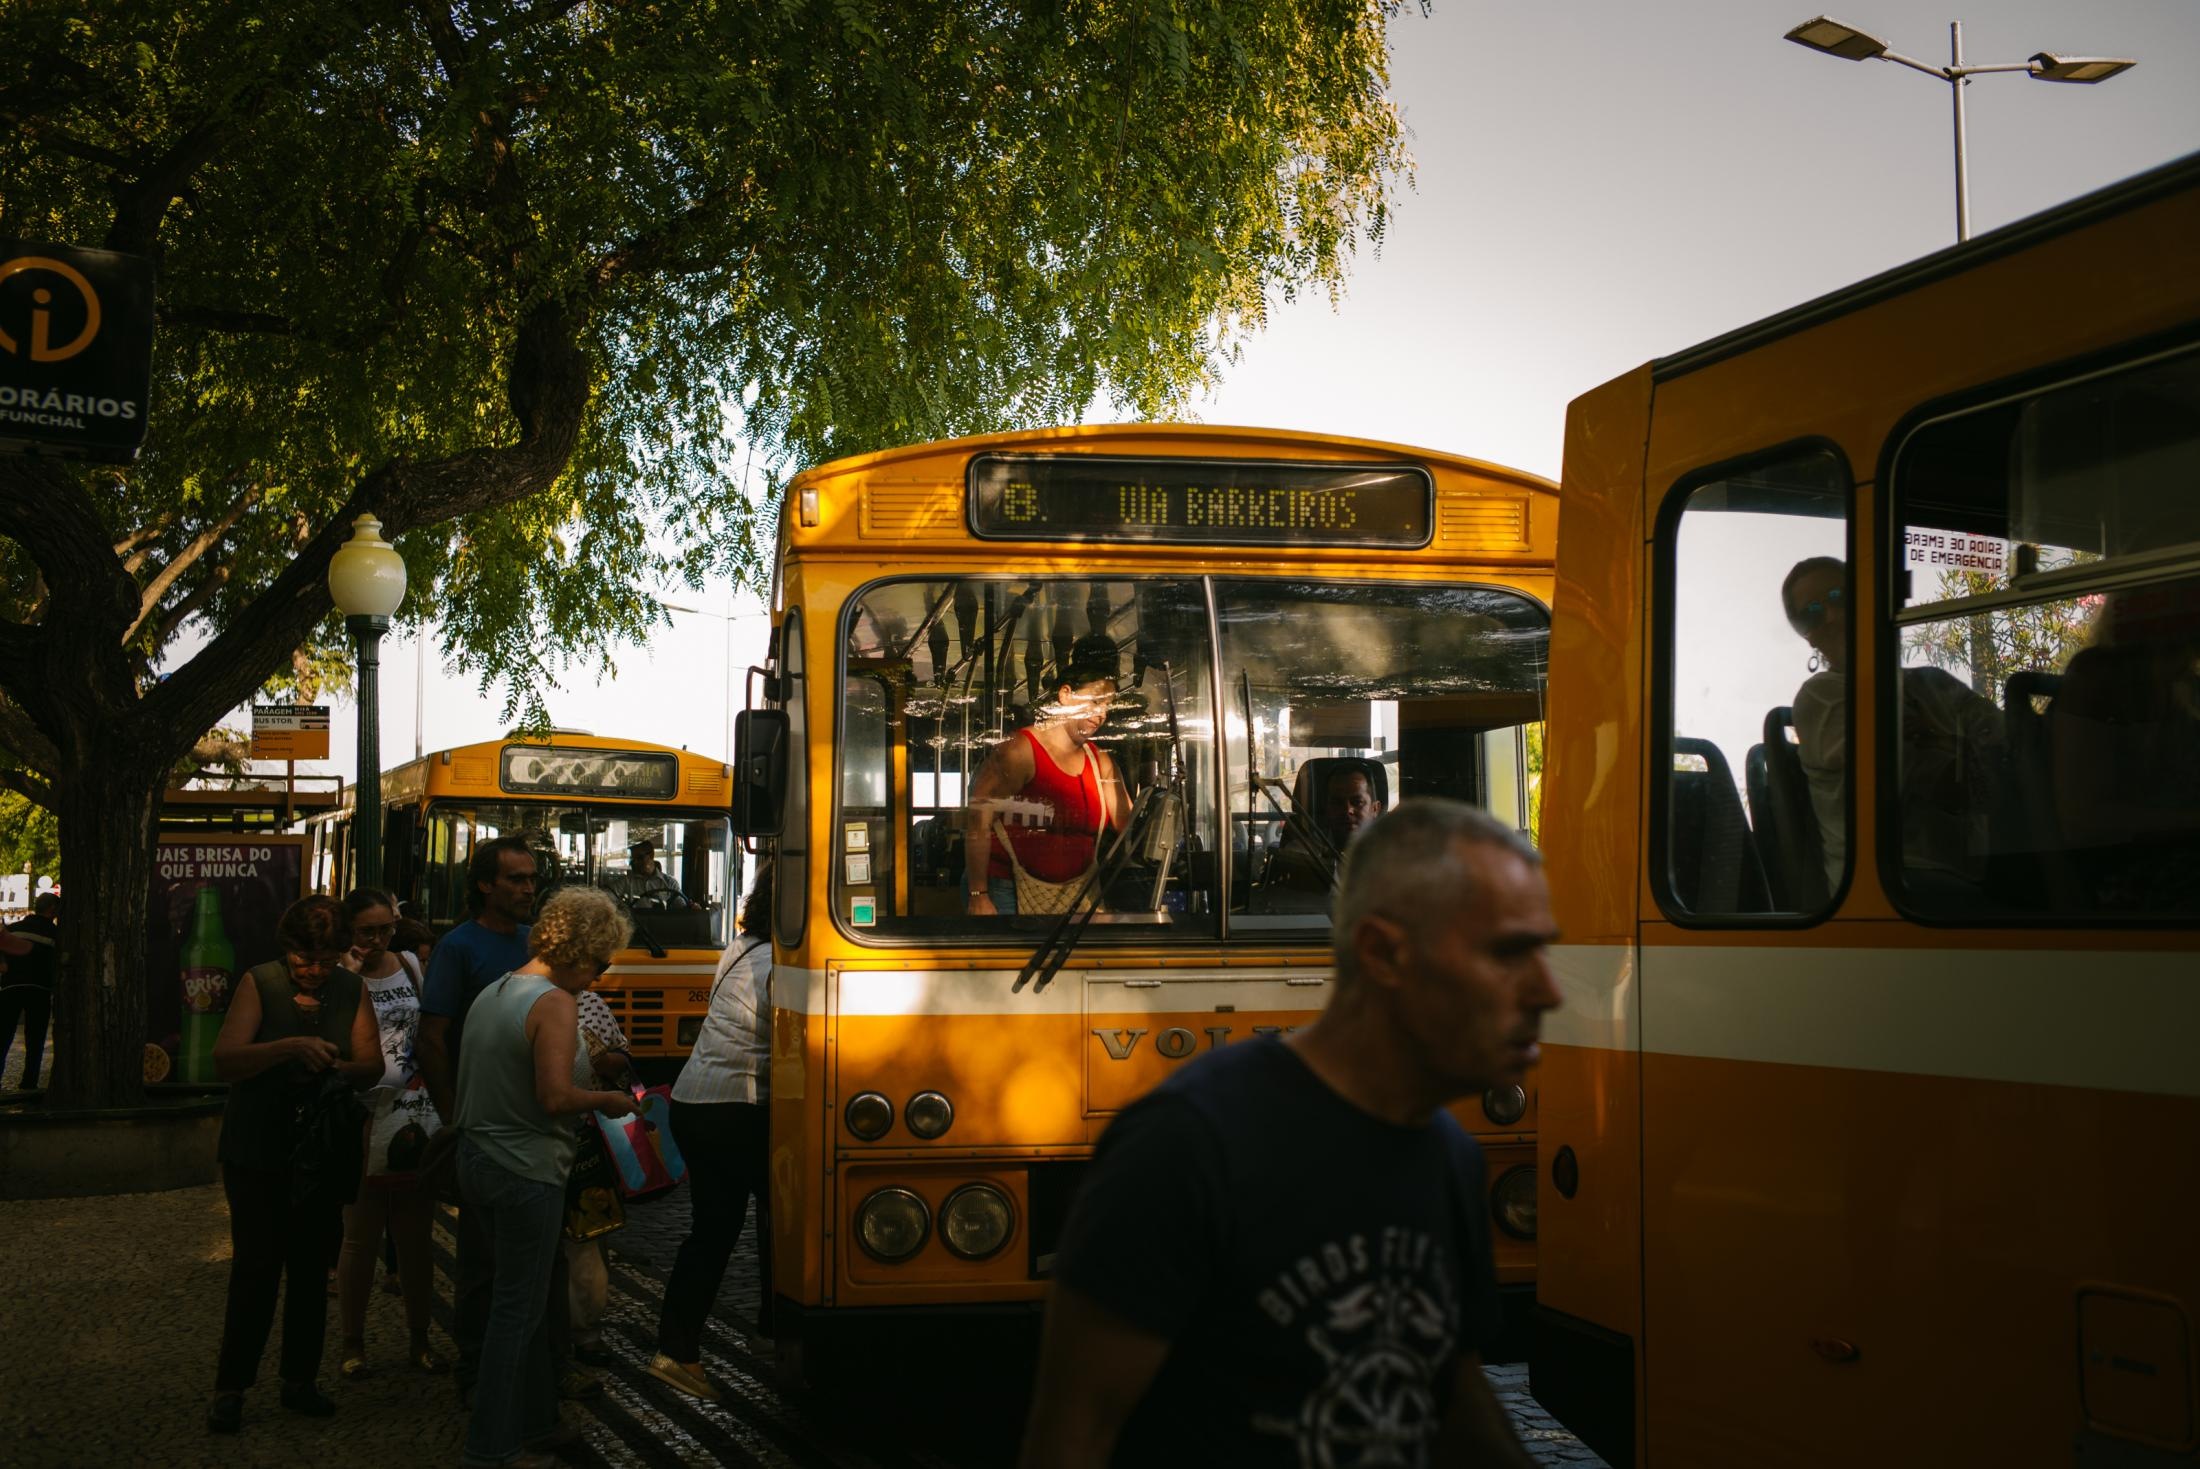 People are seen taking the bus in one of the main avenue in Funchal, the capital city of Madeira Island in Portugal. Camacha, Madeira, Portugal. 14th August 2018.